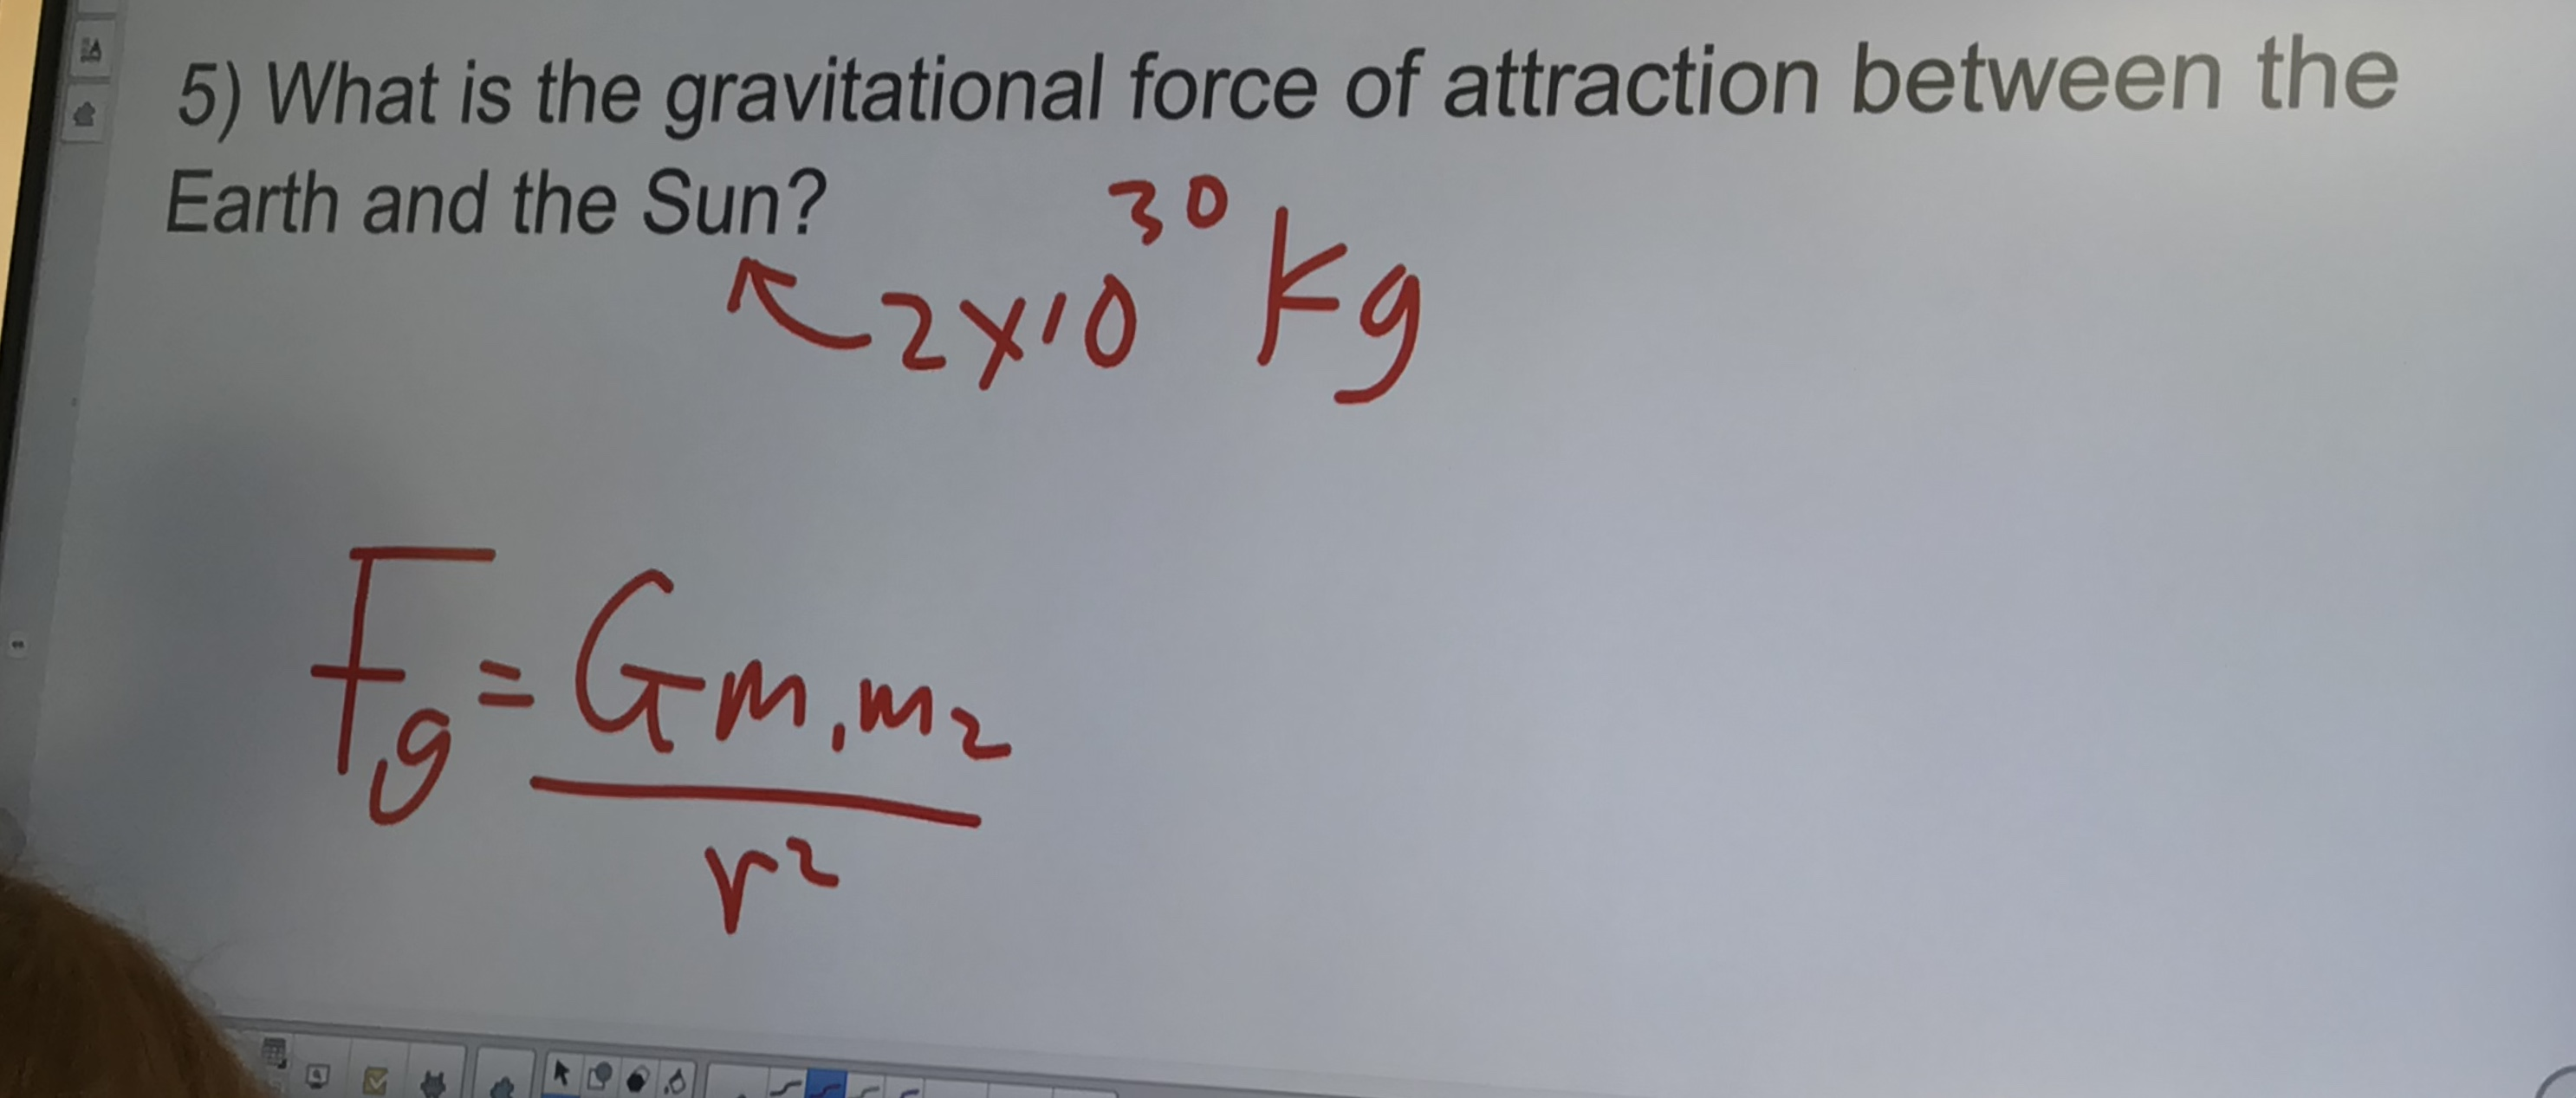 5) What is the gravitational force of attraction between the Earth and the Sun? 30 R2/0